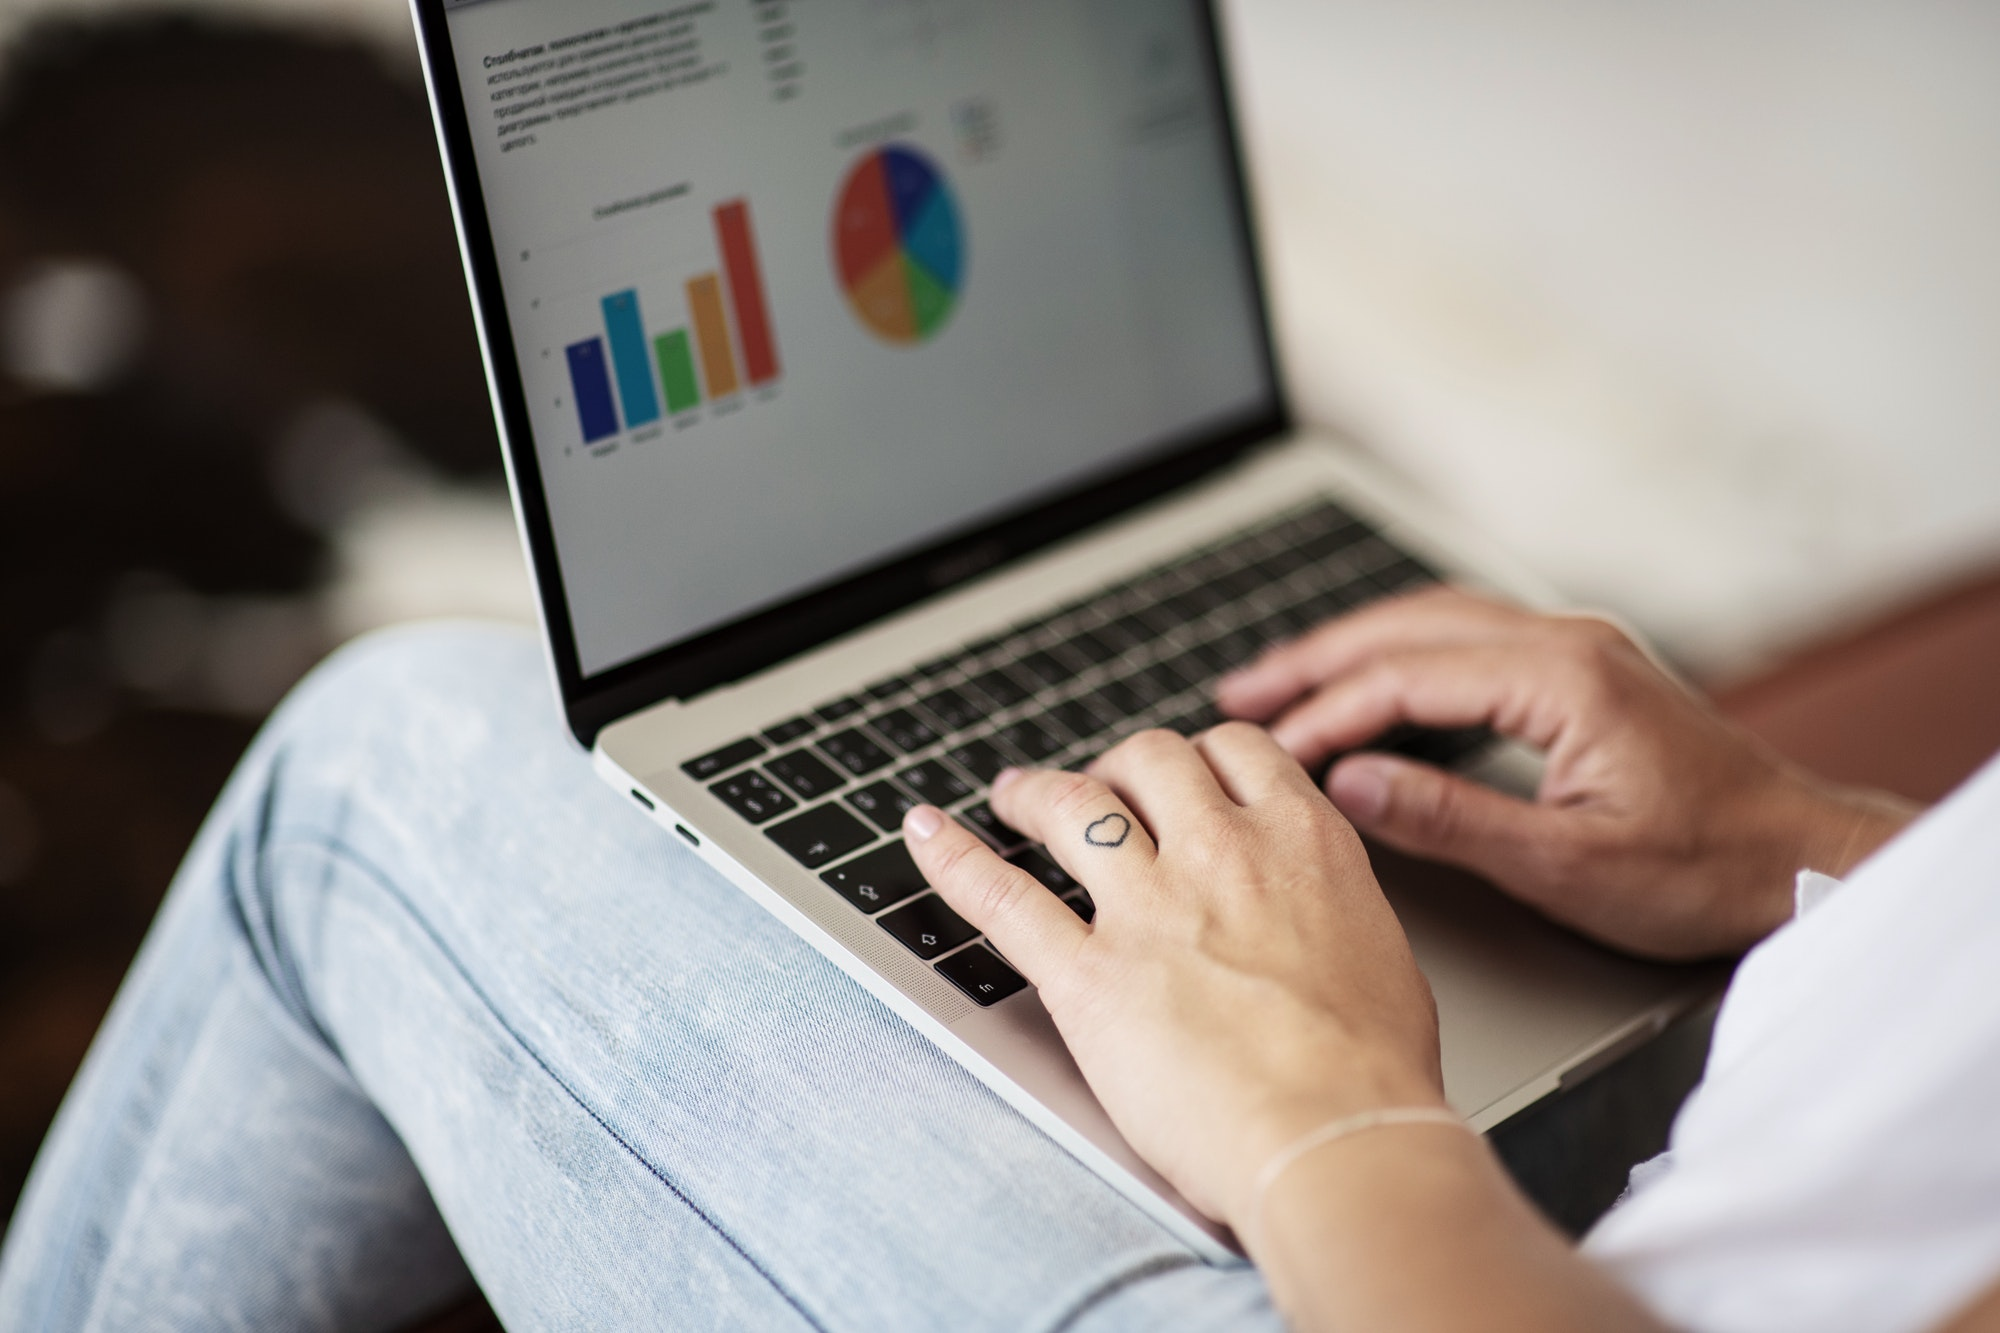 Woman using laptop to see metrics for e-commerce business